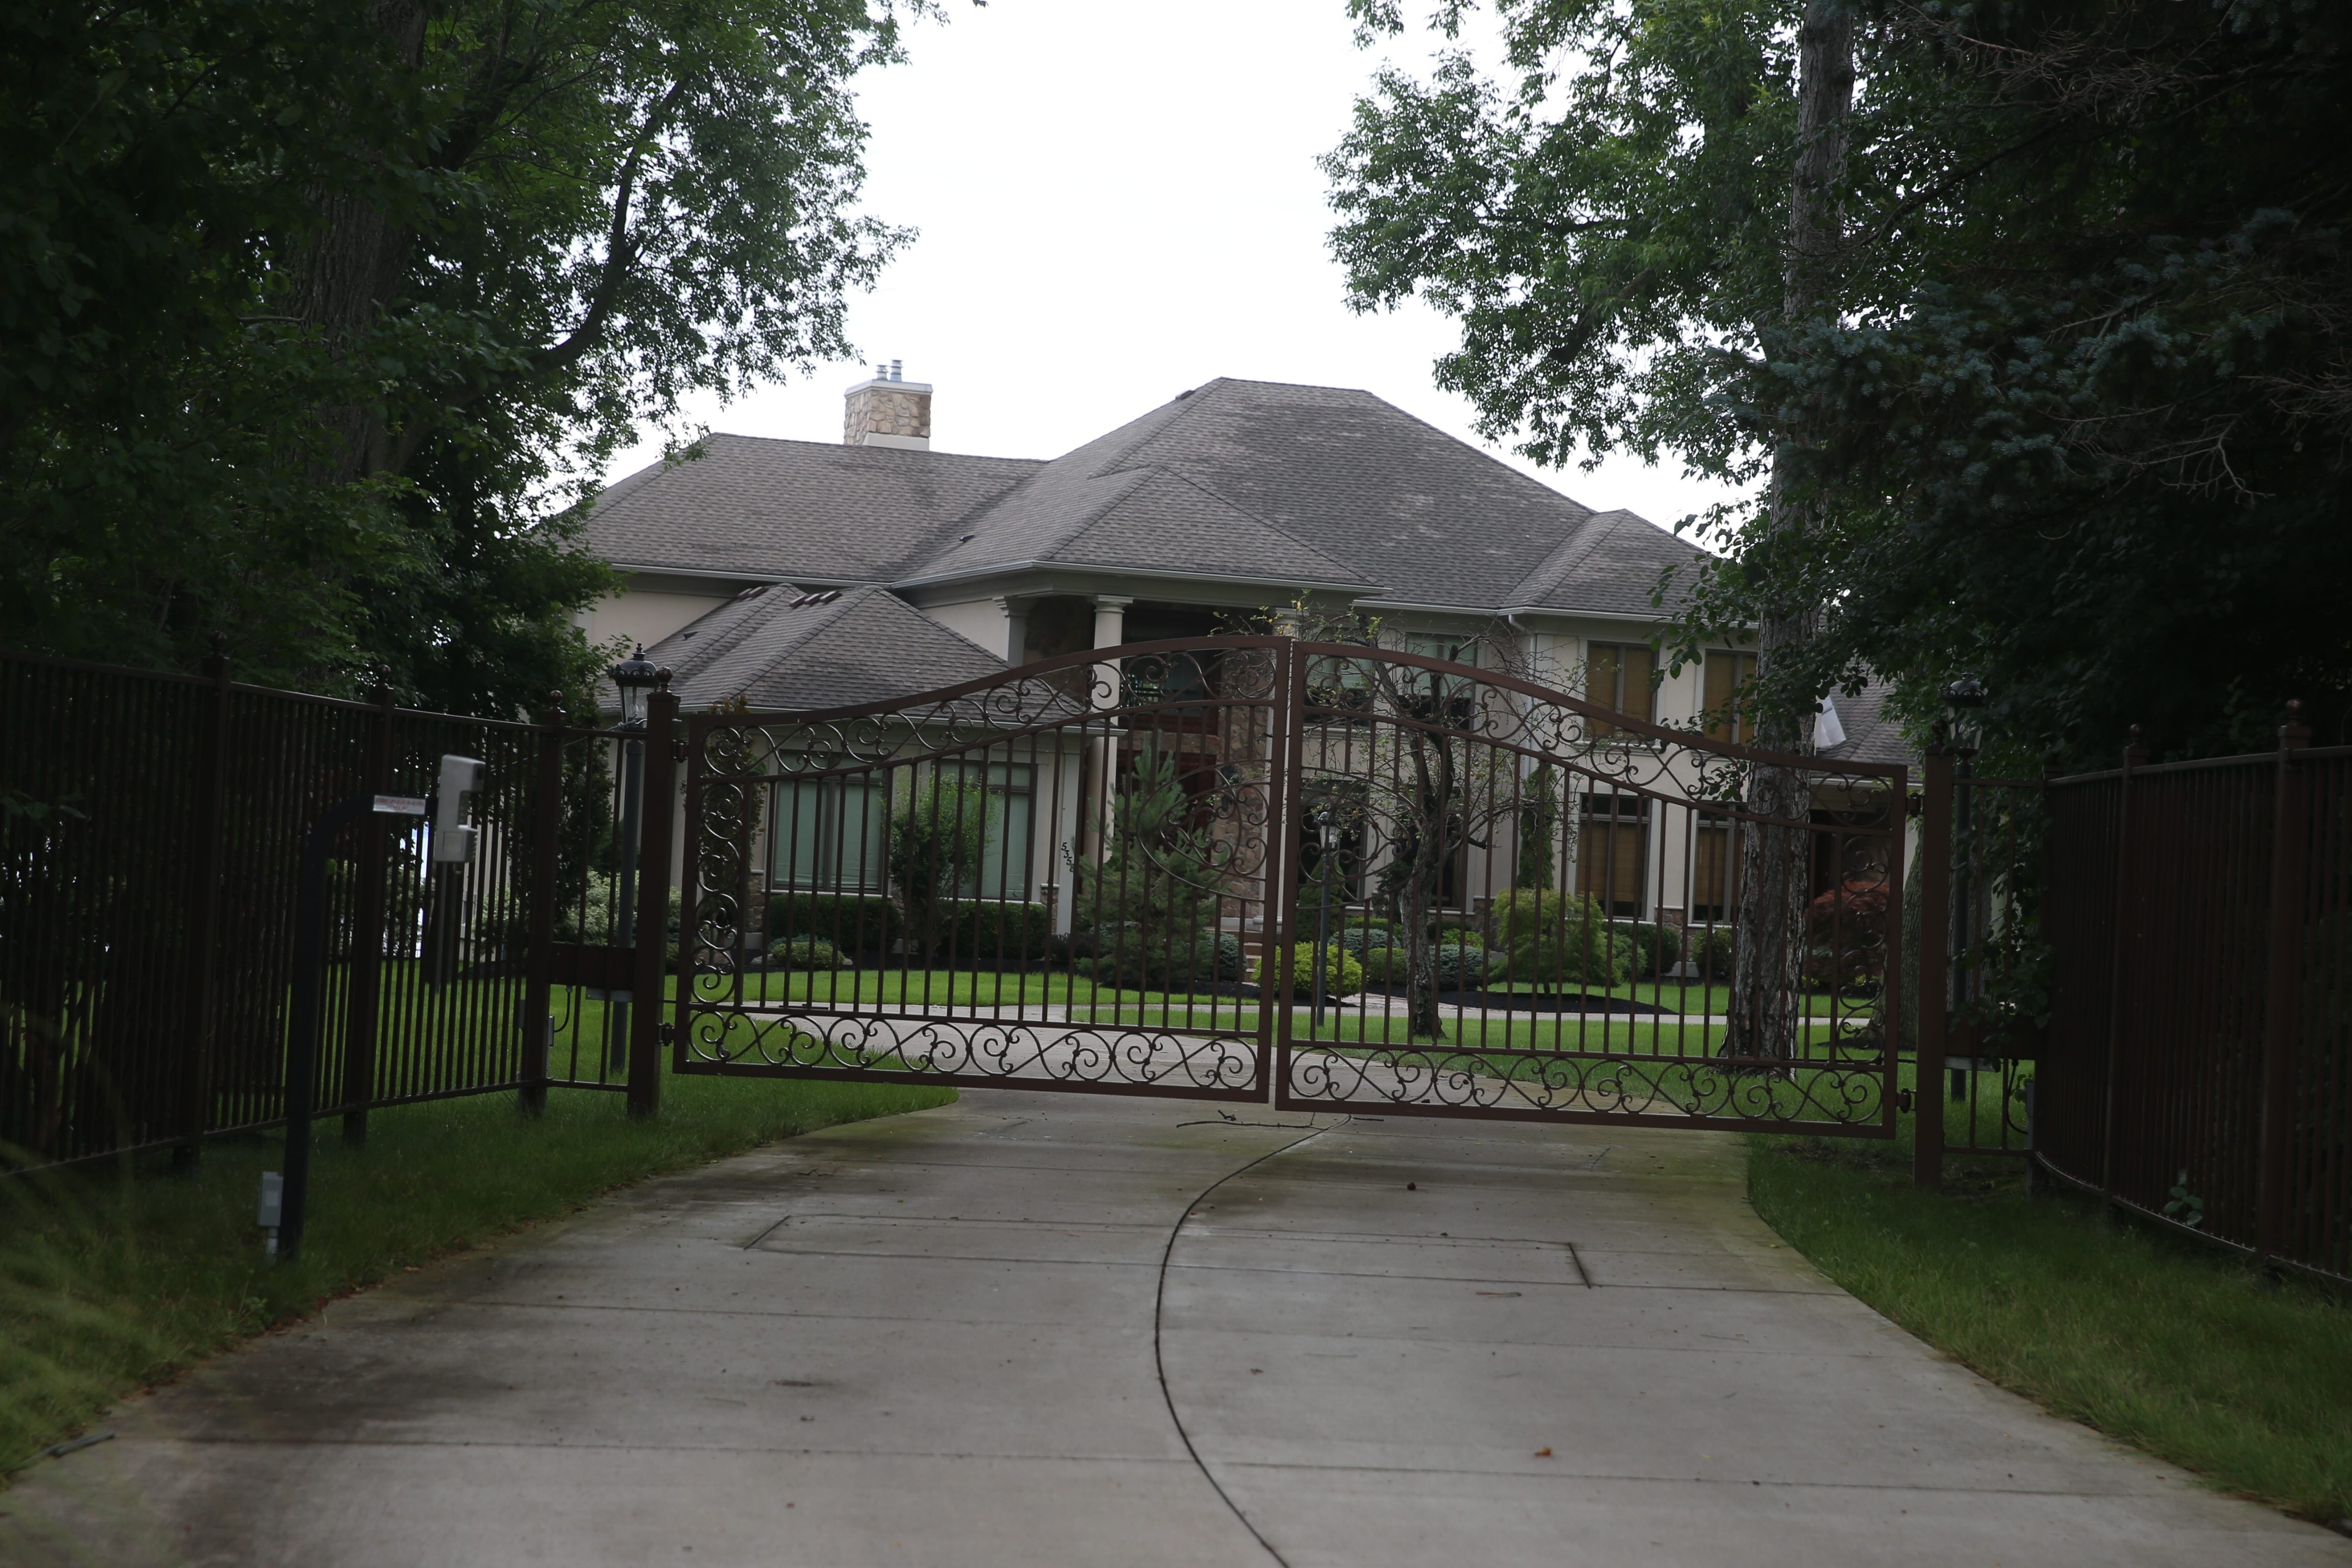 House owned by Patrick Kane, 5358 Old Lake Shore Road in Lakeview.